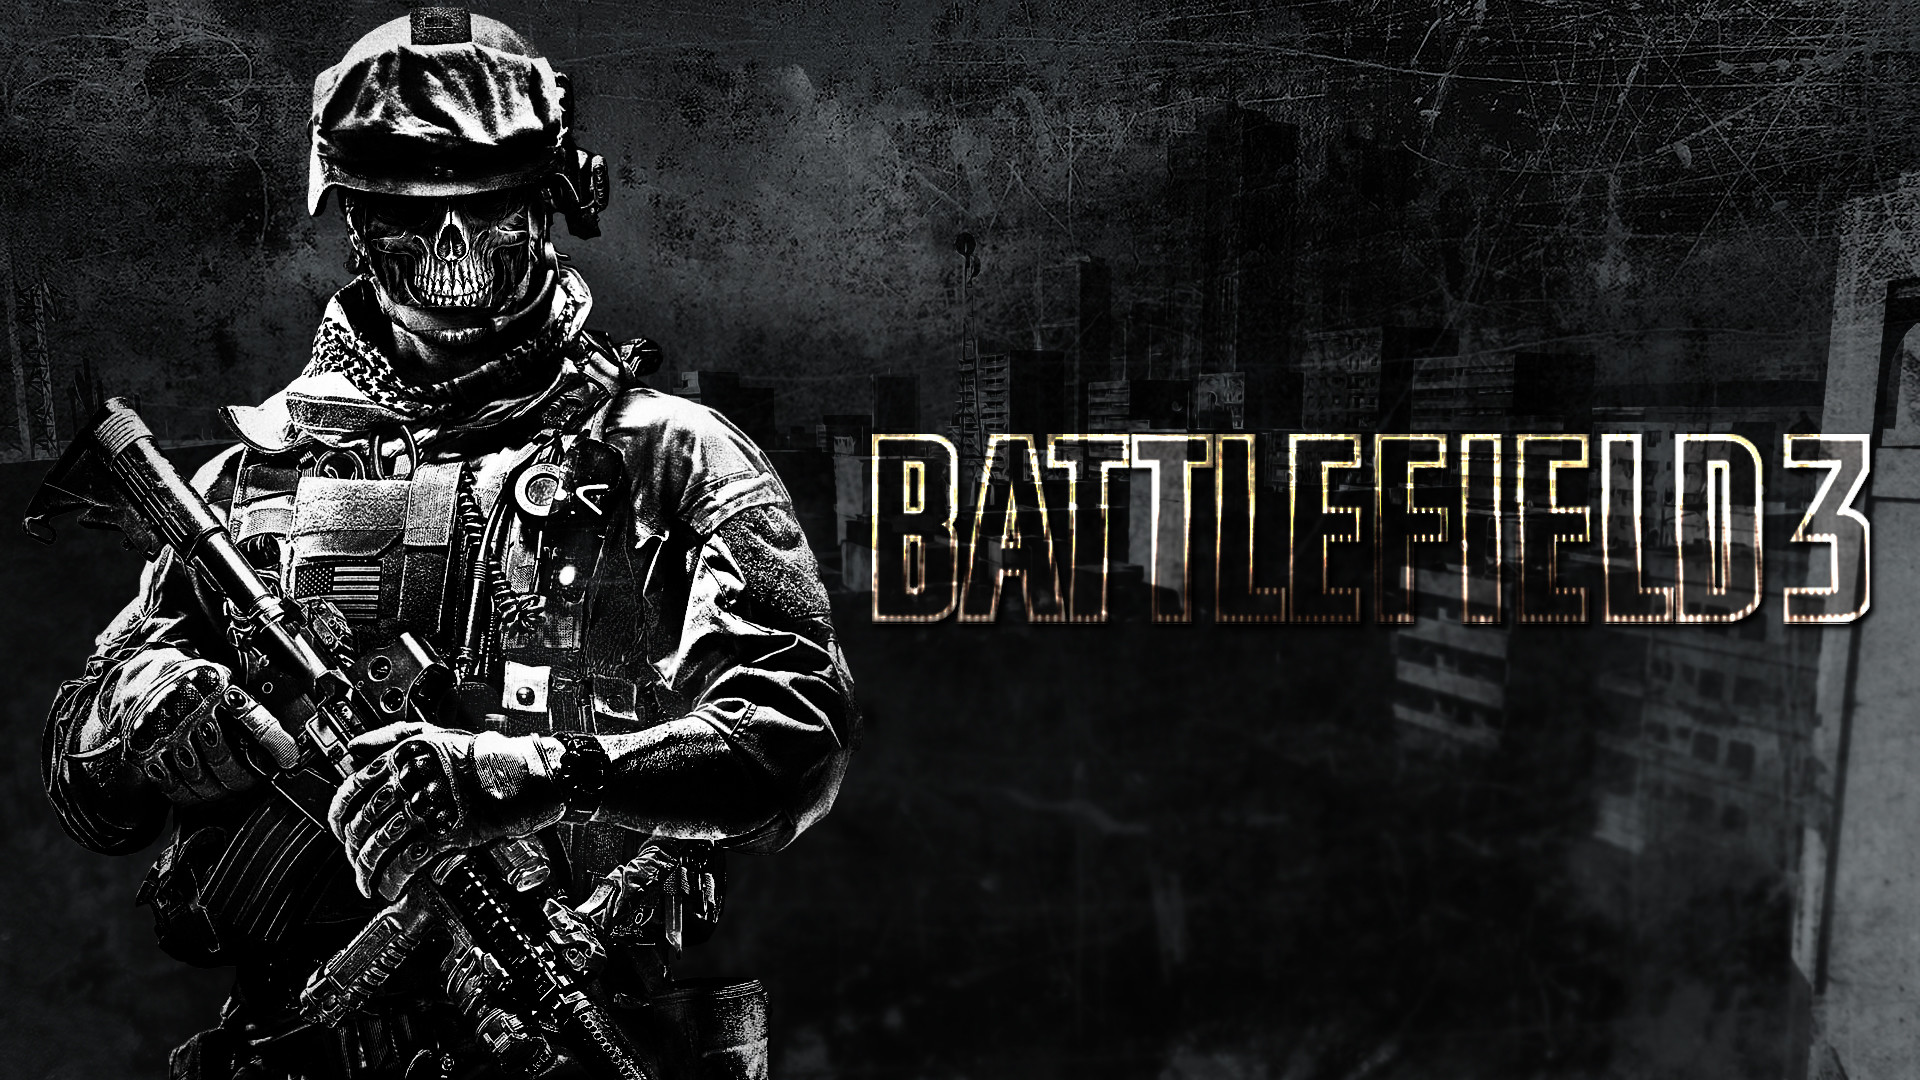 1920x1080 Battlefield 3 Sniper Wallpaper Iphone